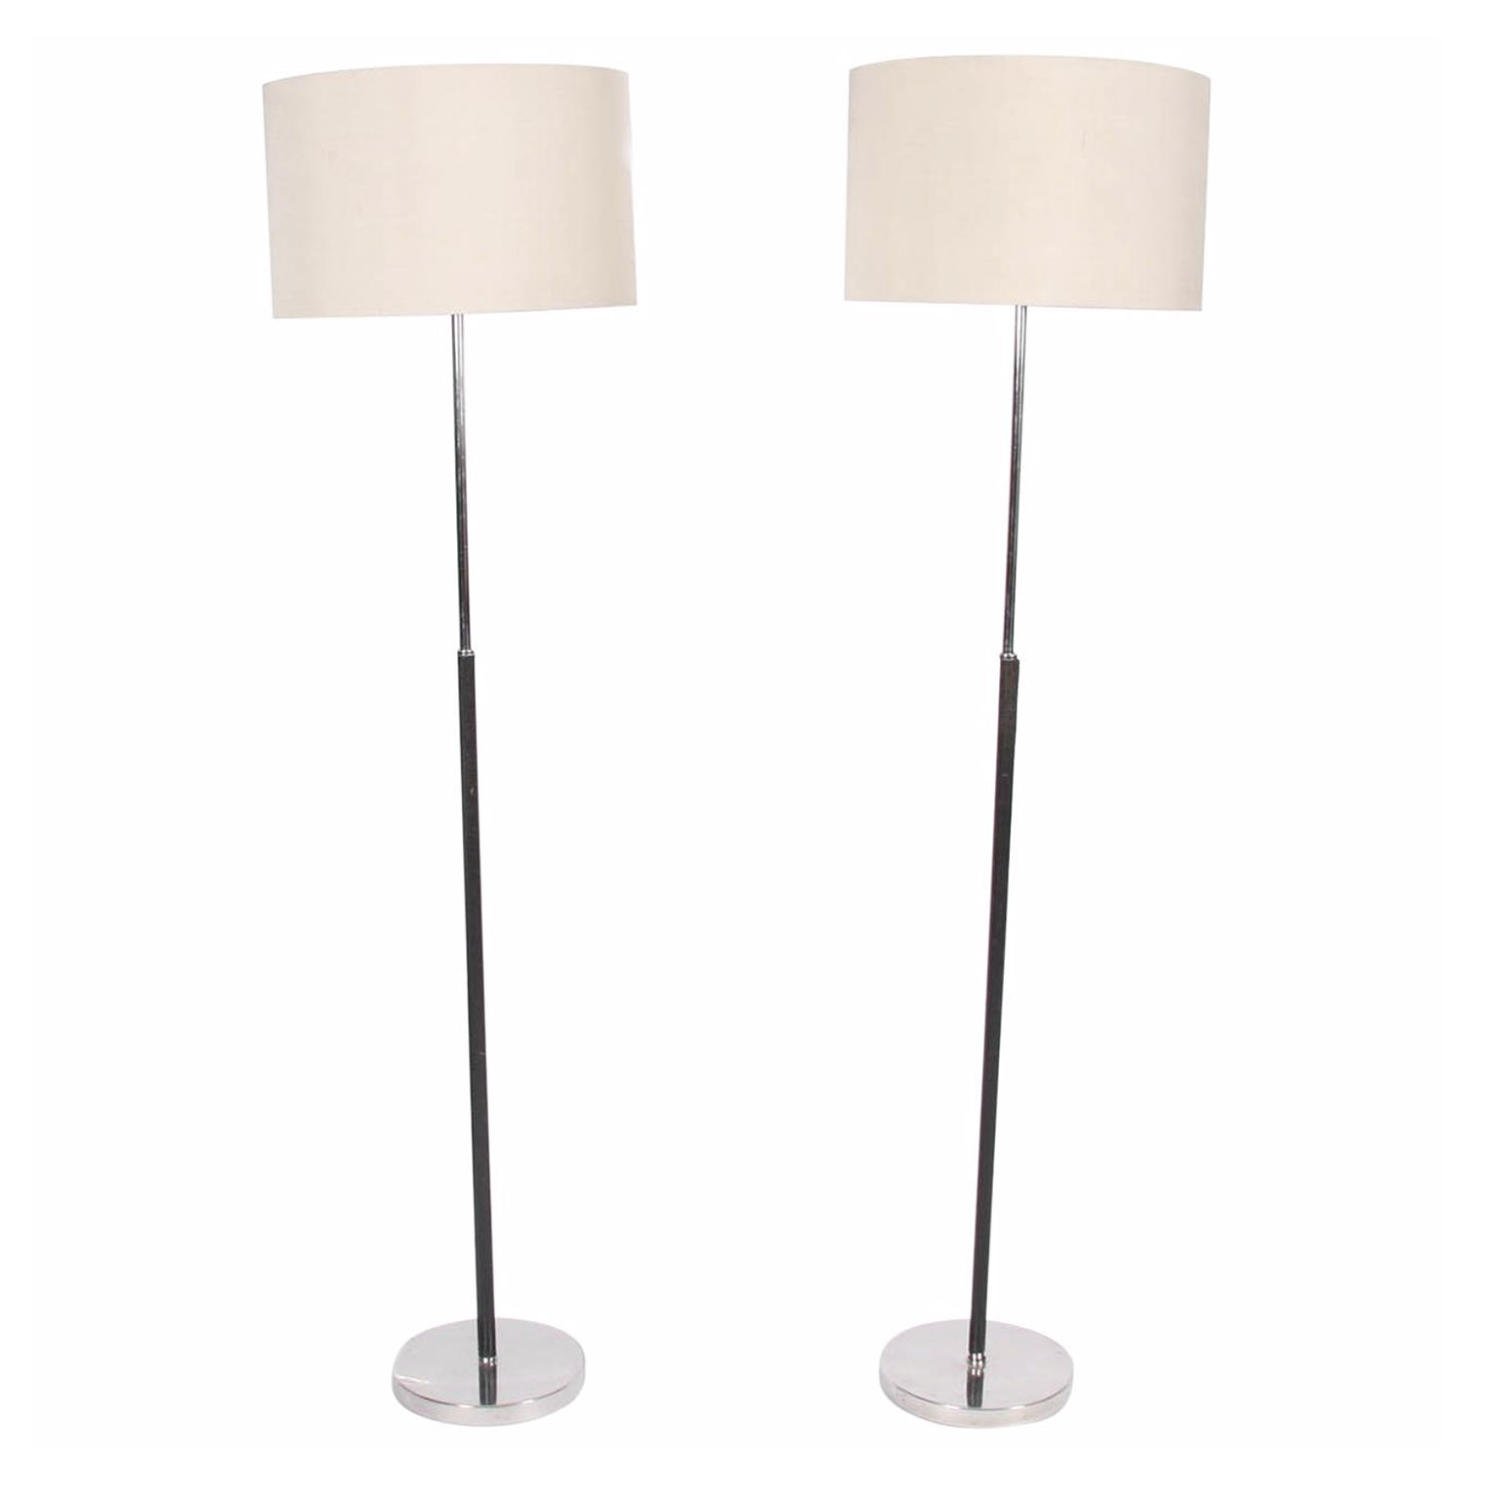 Pair of Black Leather and Chrome Floor Lamps